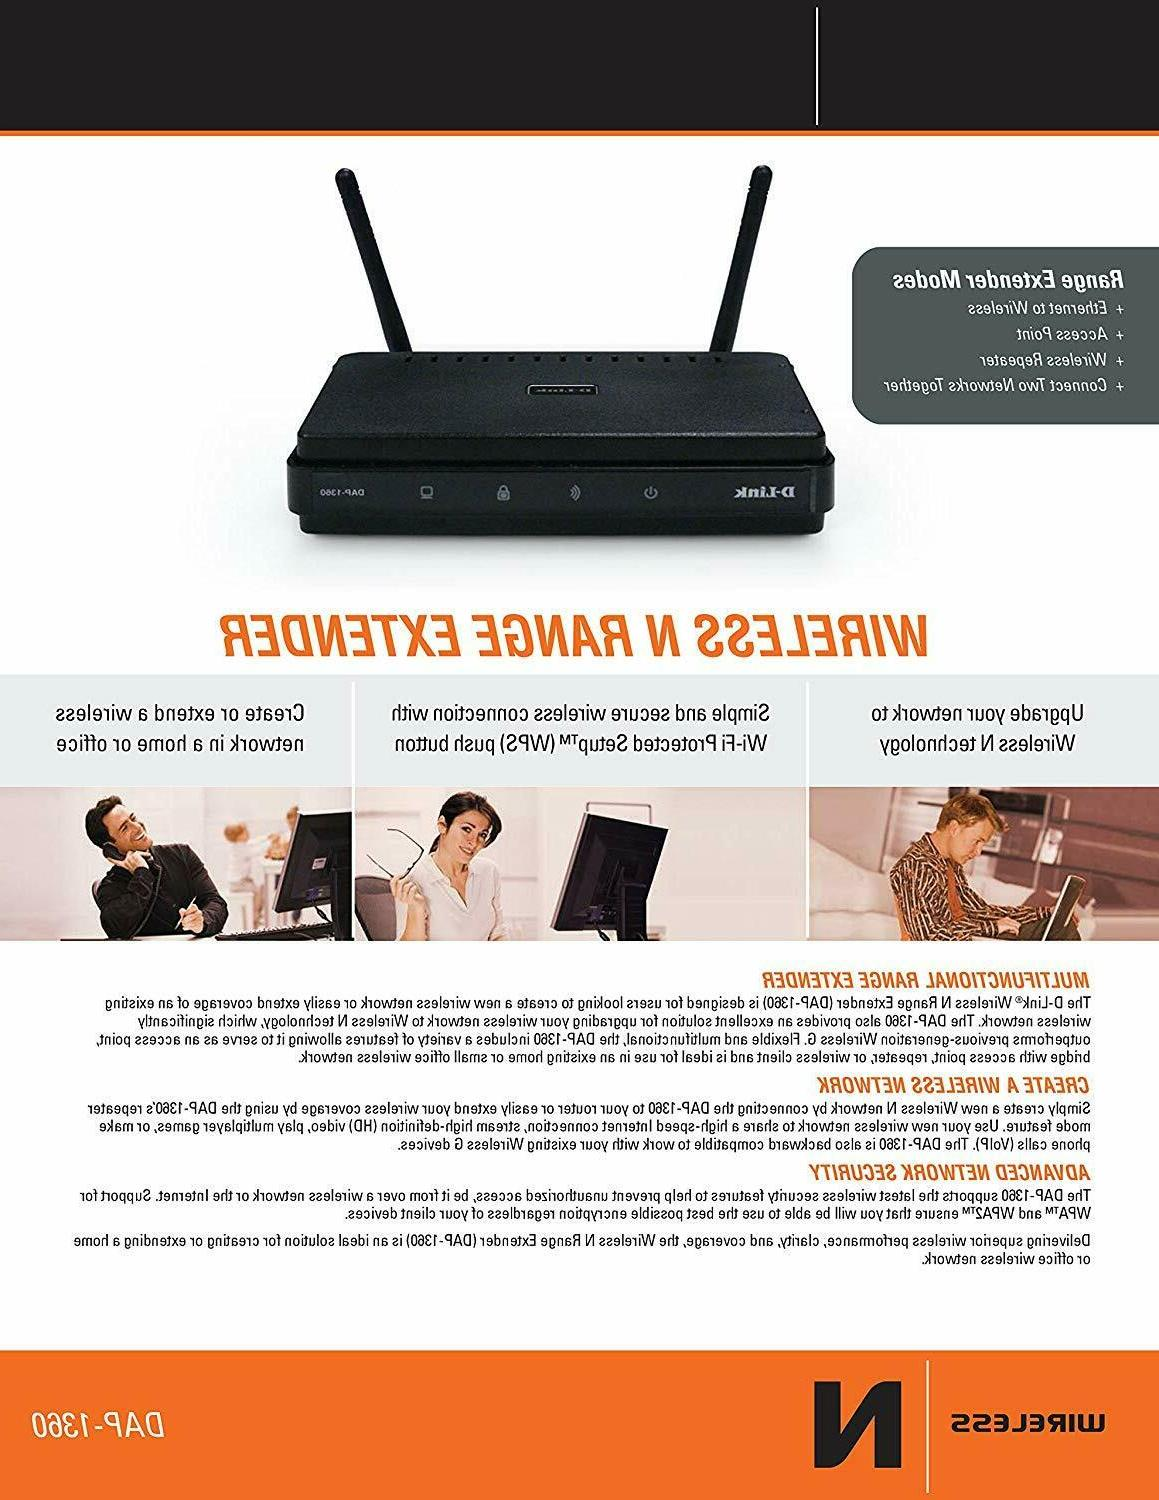 d link dap 1360 wireless n access